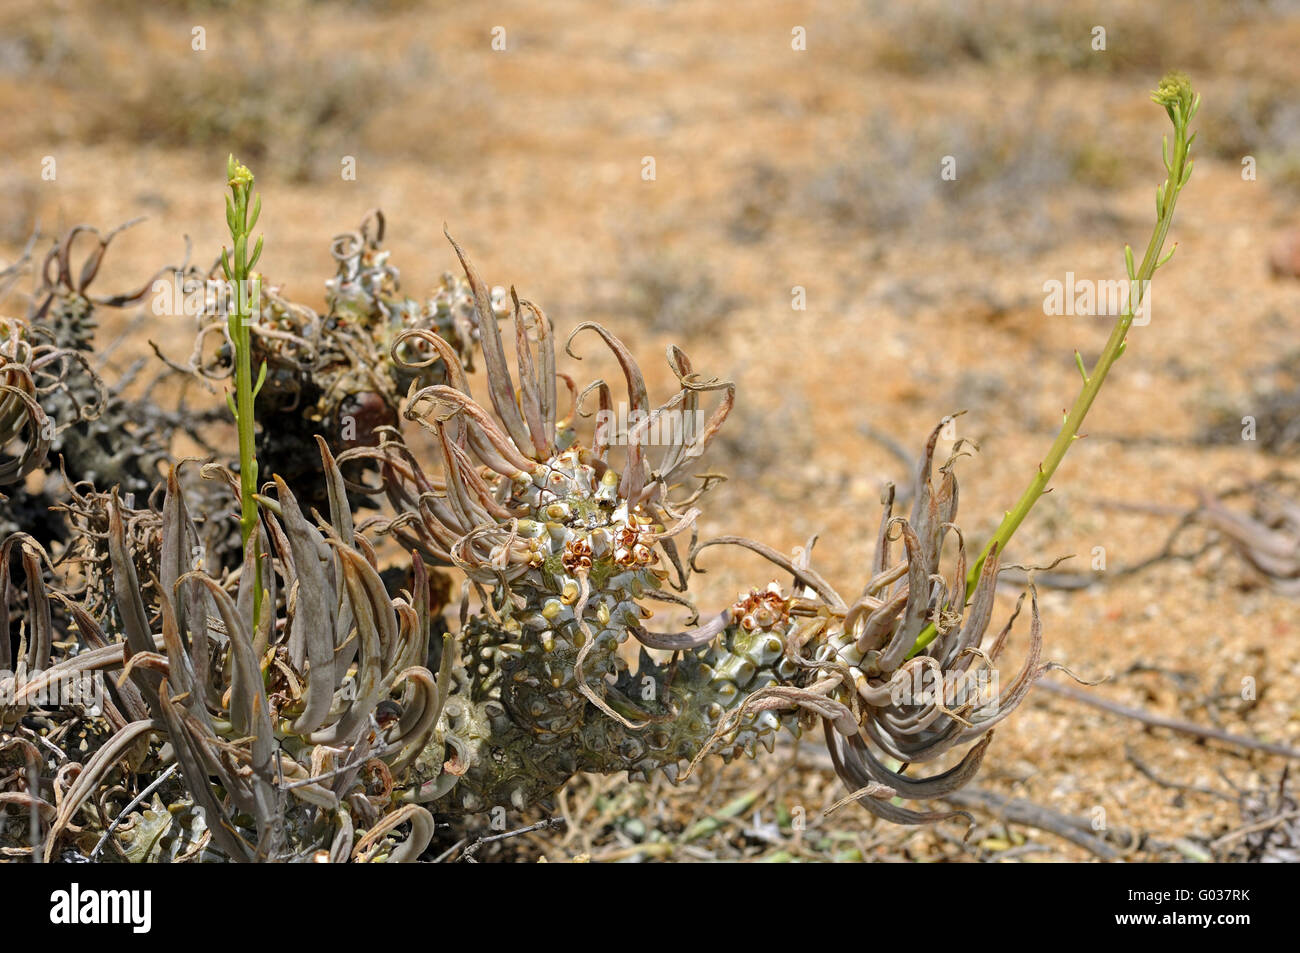 Tylecodon wallichii with flower buds, South Africa - Stock Image